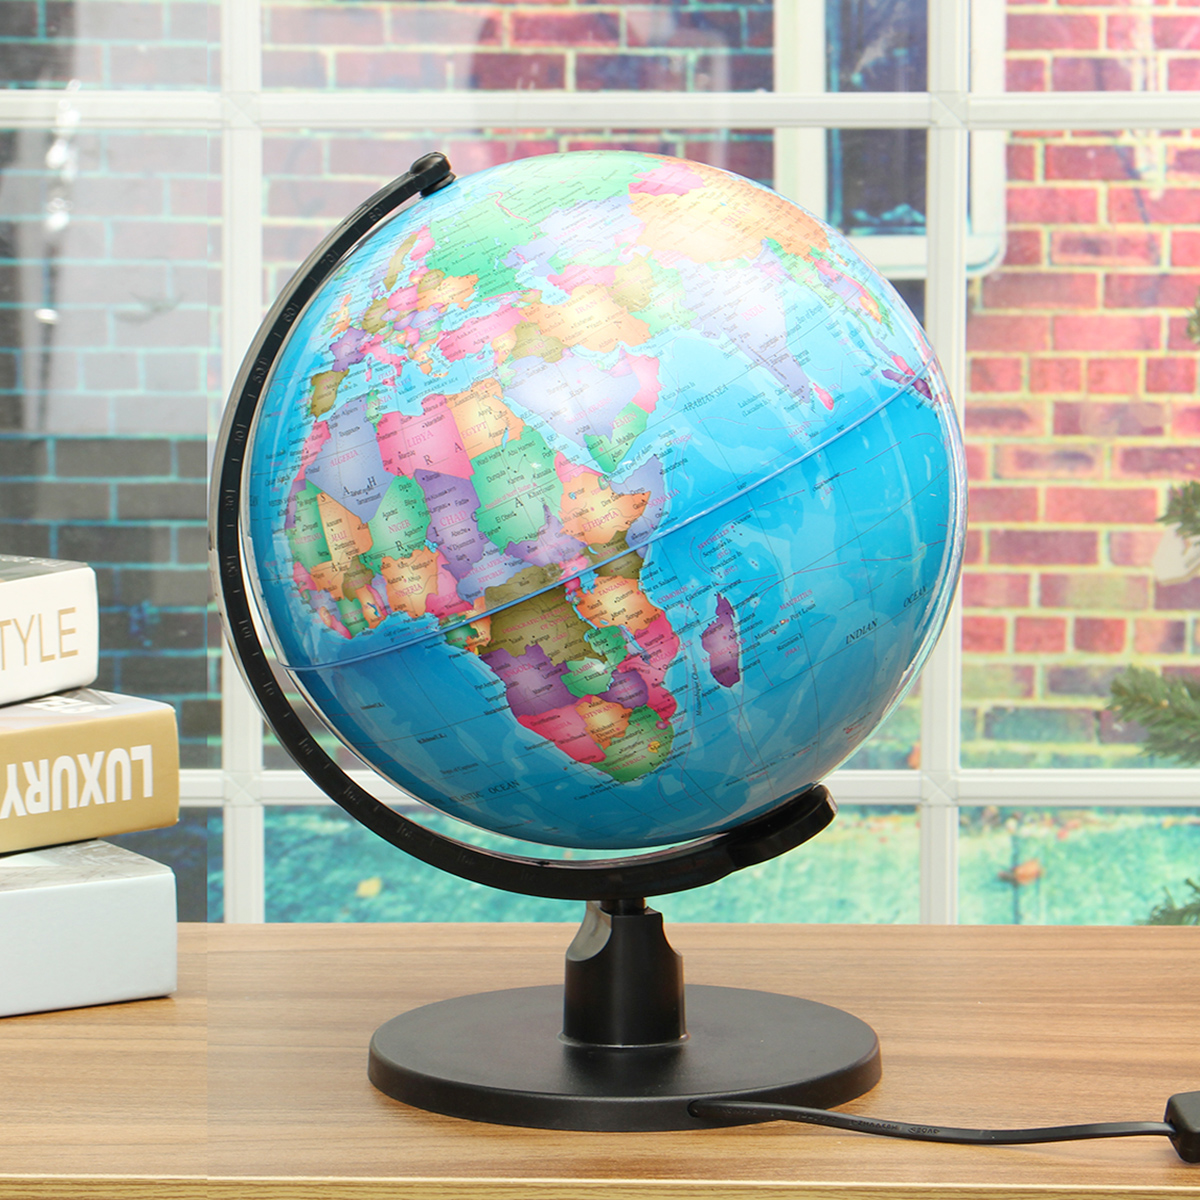 17CM LED light World Earth Globe Map Geography Educational Toy With Stand Home Office Ideal Miniatures Gift office gadgets картины декарт репродукция 50 50 1 арт д в6